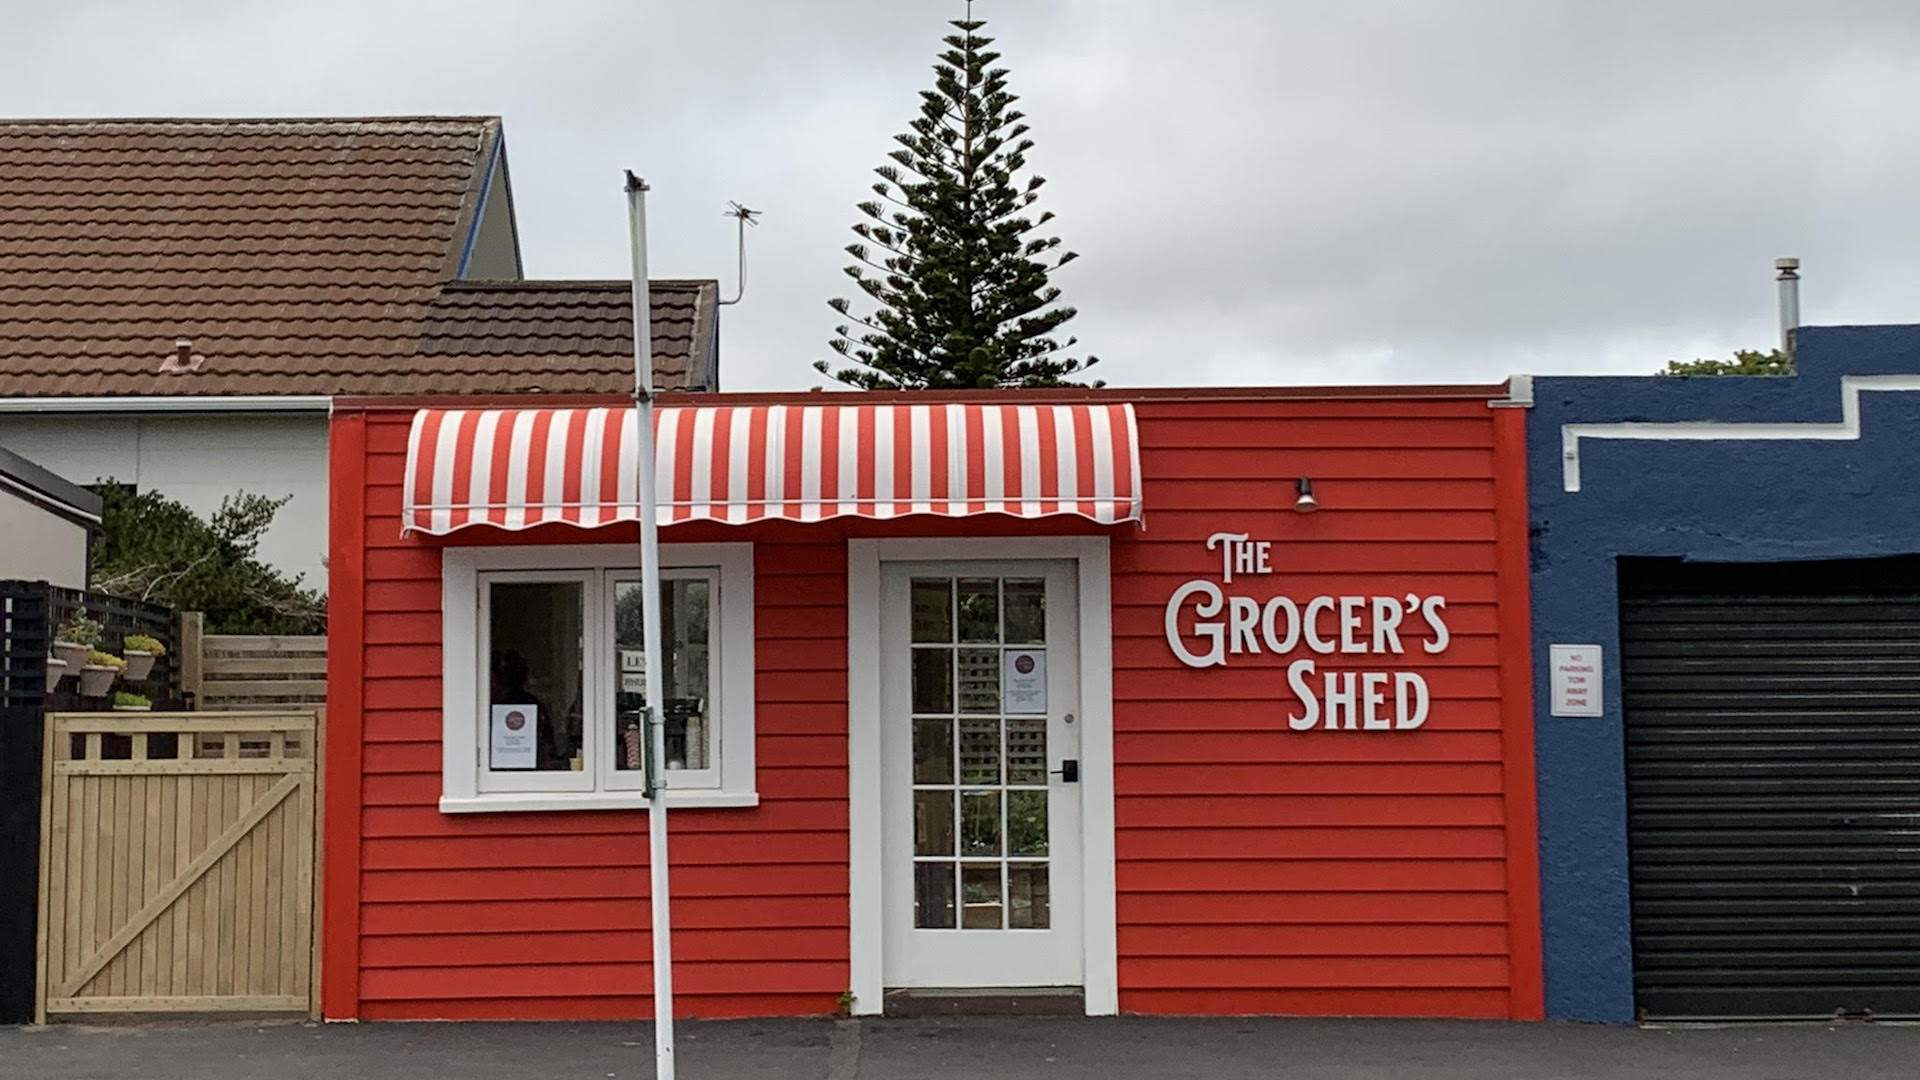 The Grocer's Shed